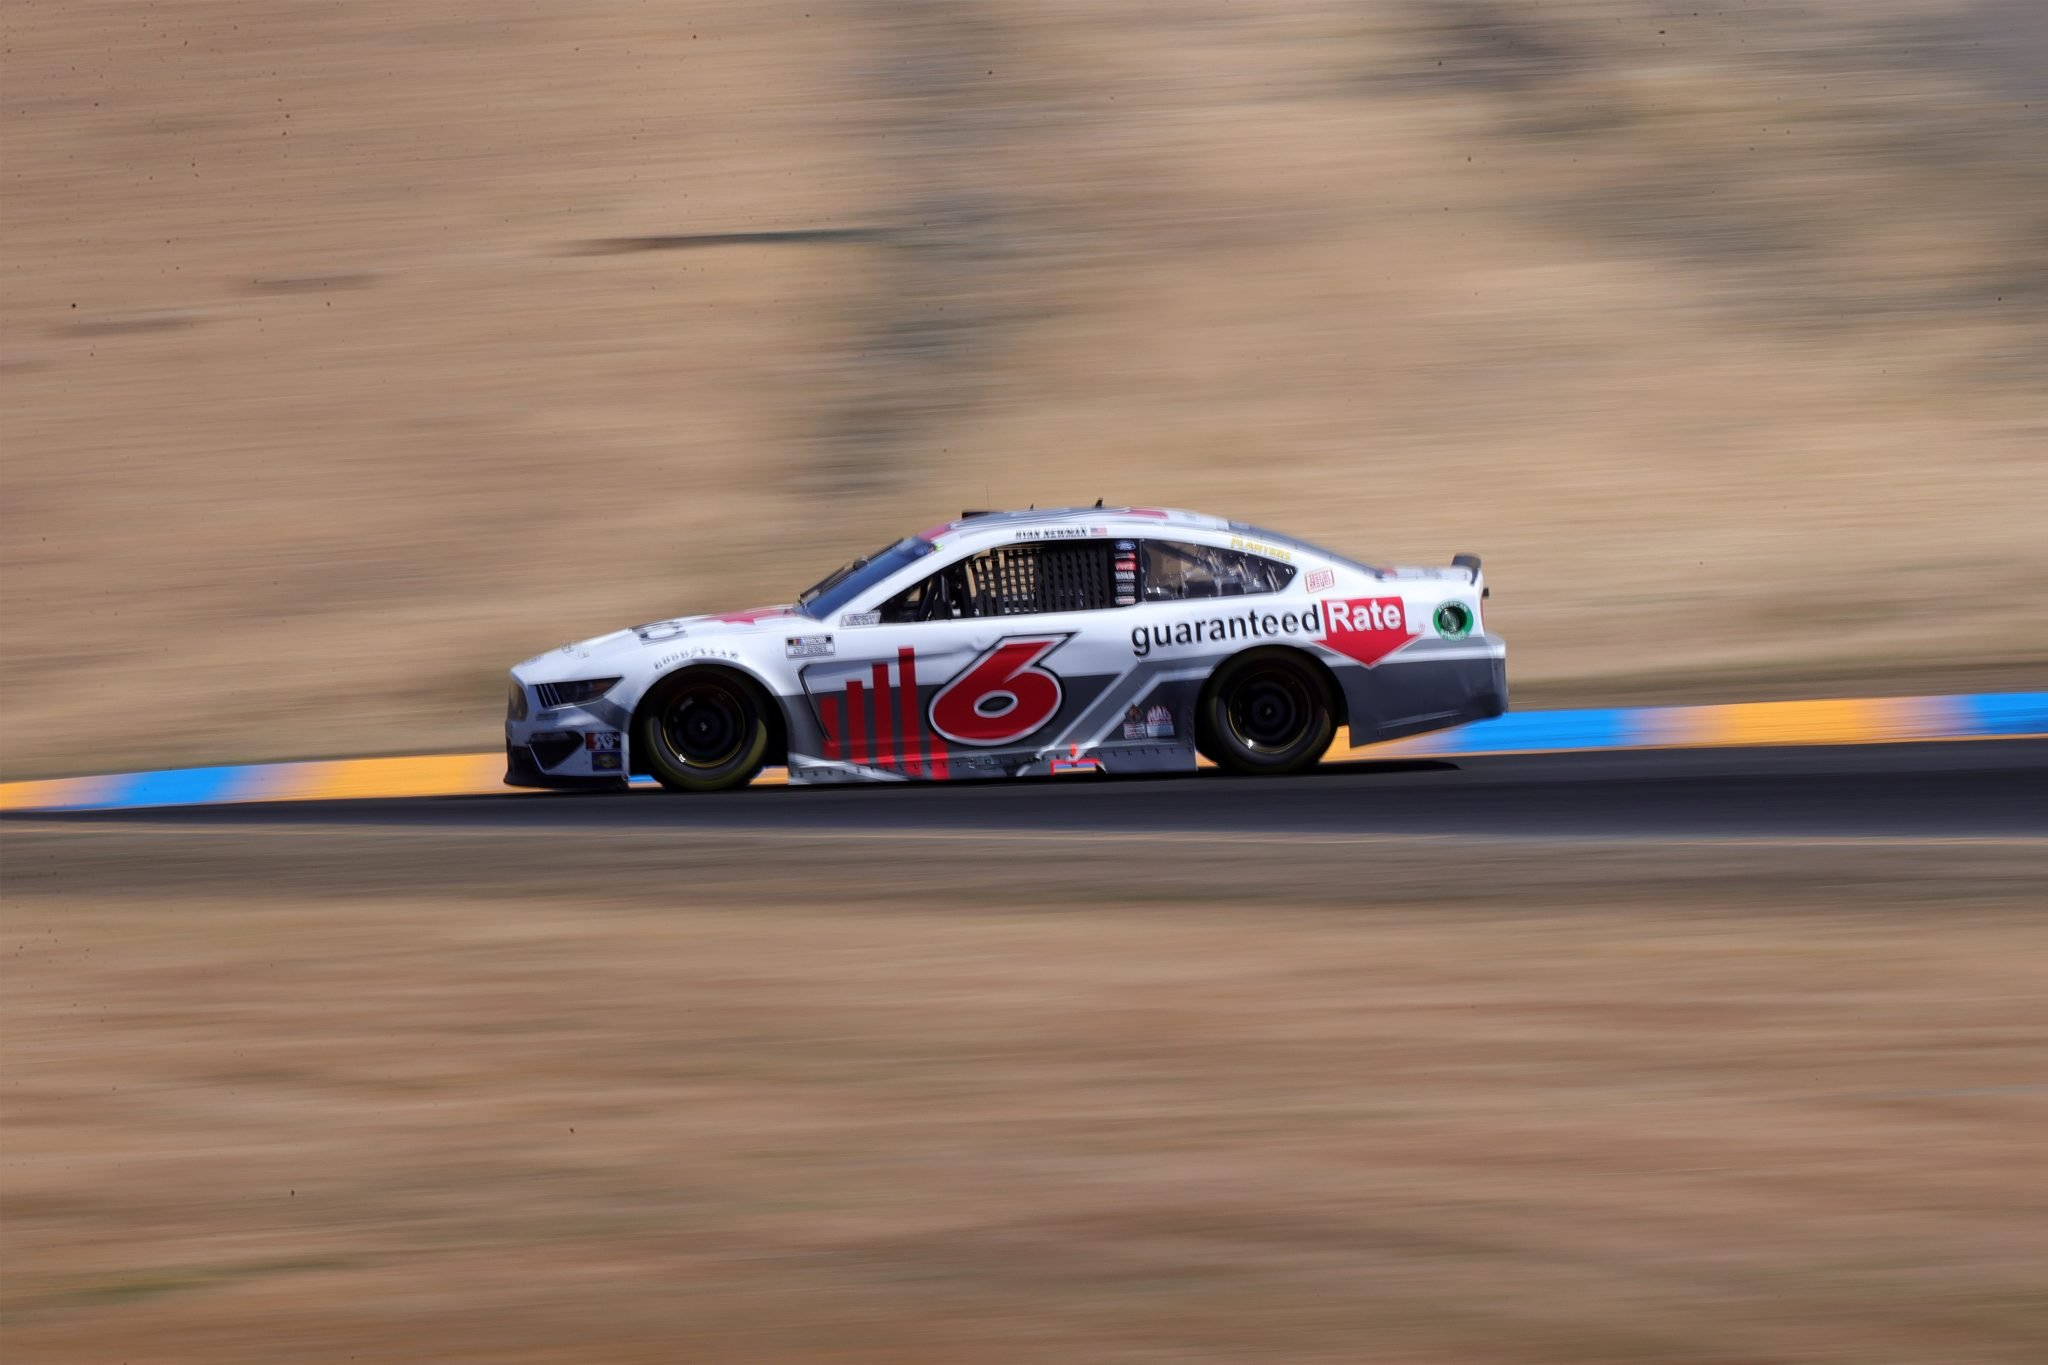 SONOMA, CALIFORNIA - JUNE 06: Ryan Newman, driver of the #6 Guaranteed Rate Ford, drives during the NASCAR Cup Series Toyota/Save Mart 350 at Sonoma Raceway on June 06, 2021 in Sonoma, California. (Photo by Carmen Mandato/Getty Images) | Getty Images